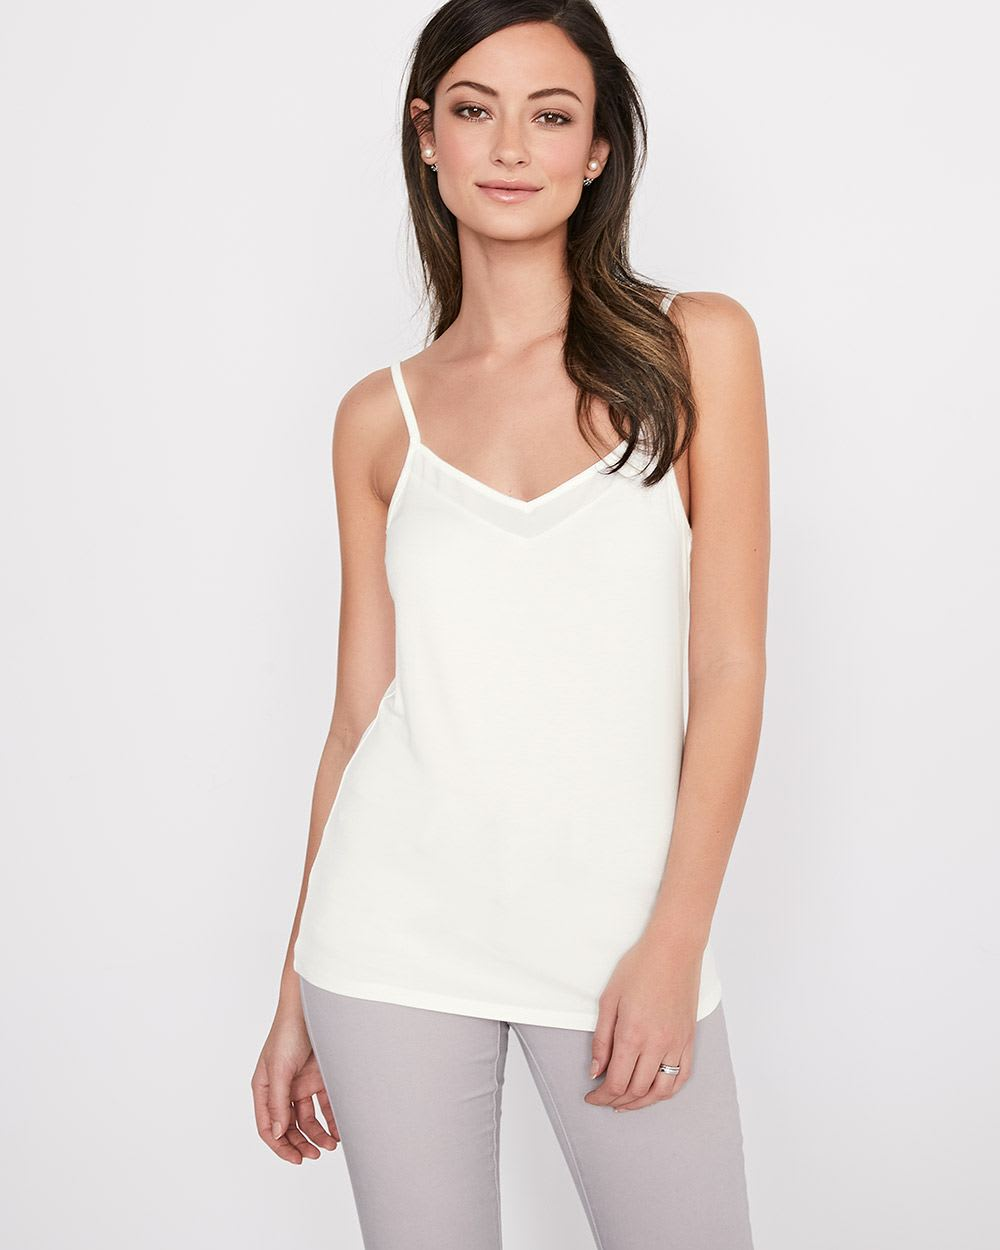 Cami with Adjustable Straps